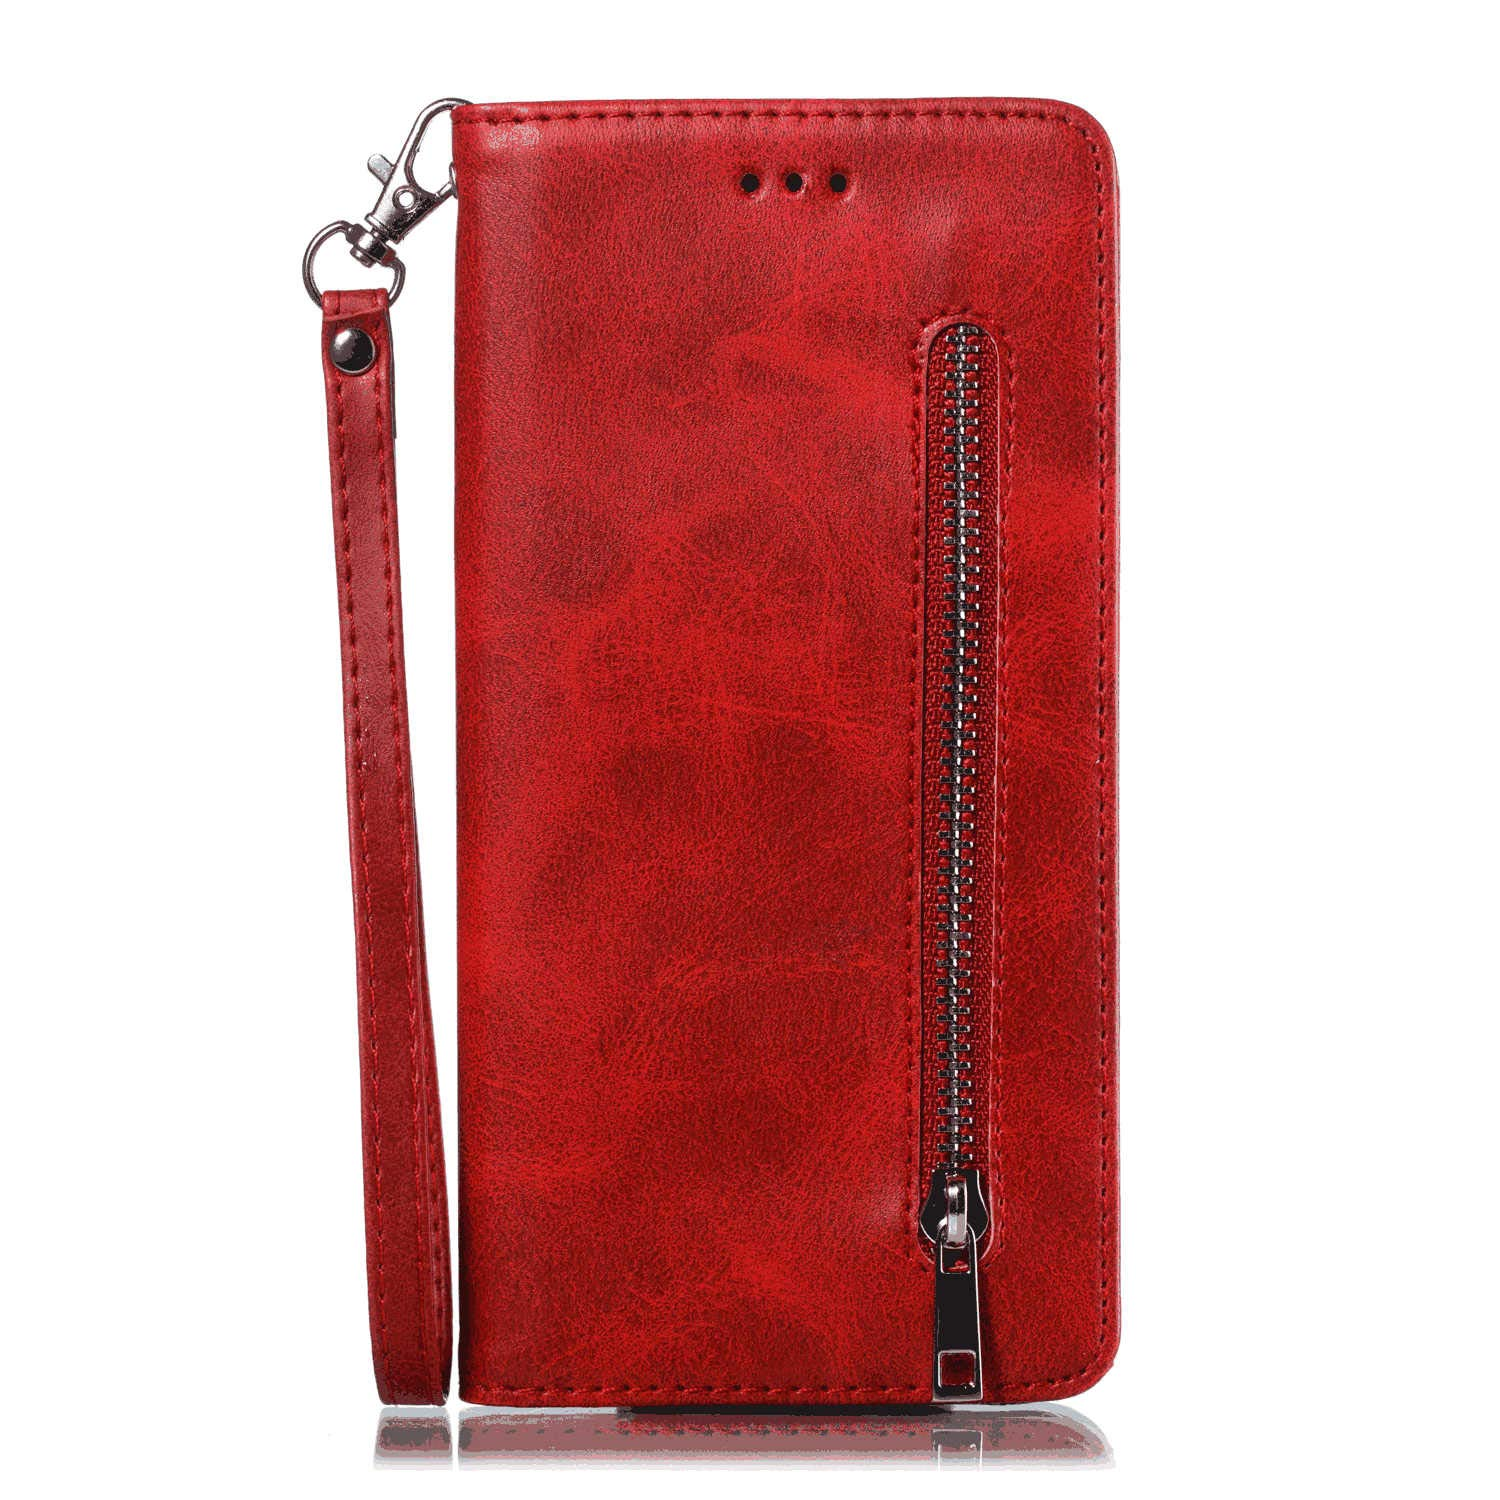 Flip Case Fit for Selling rankings iPhone Extra-Shockproof Challenge the lowest price of Japan Kickstand Hol Card Xs